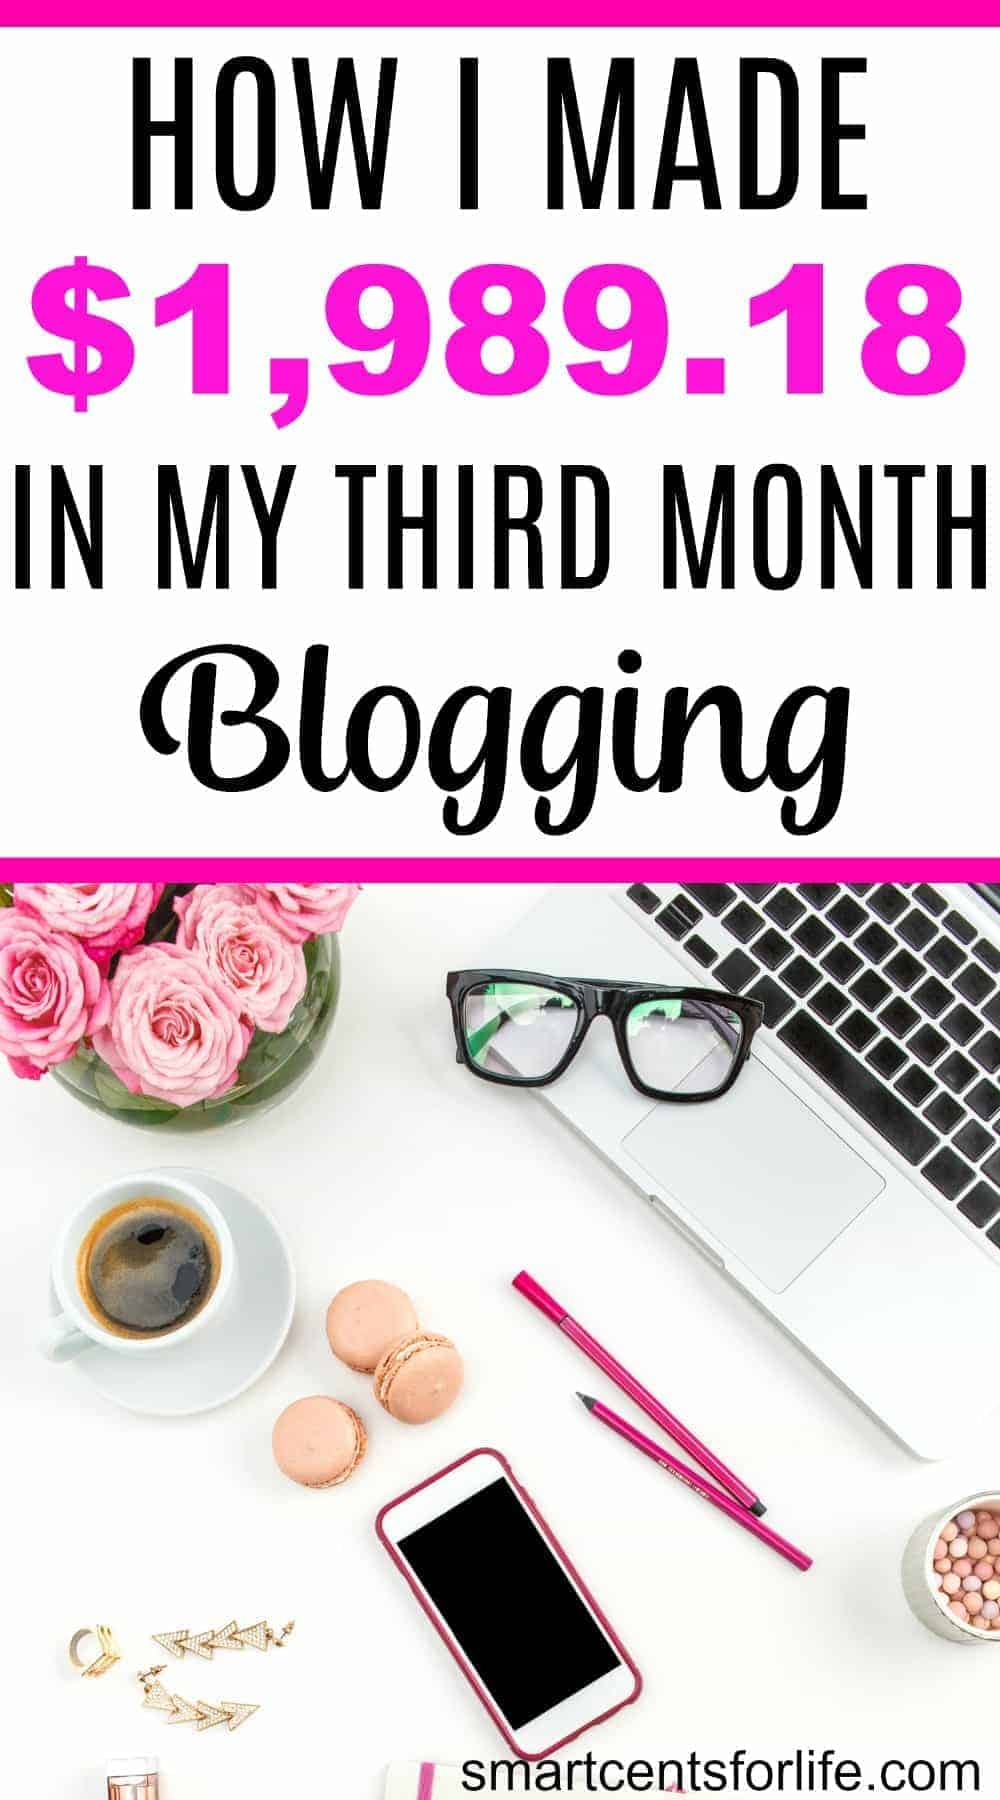 How I Made $1989.18 In My Third Moth Blogging - My First Income Report. Three months ago I didn't know you could make money blogging. Now, I am excited to share how my blog made money. In this post, I show you the exact steps I took to make money online. This is my first blog income and traffic report.